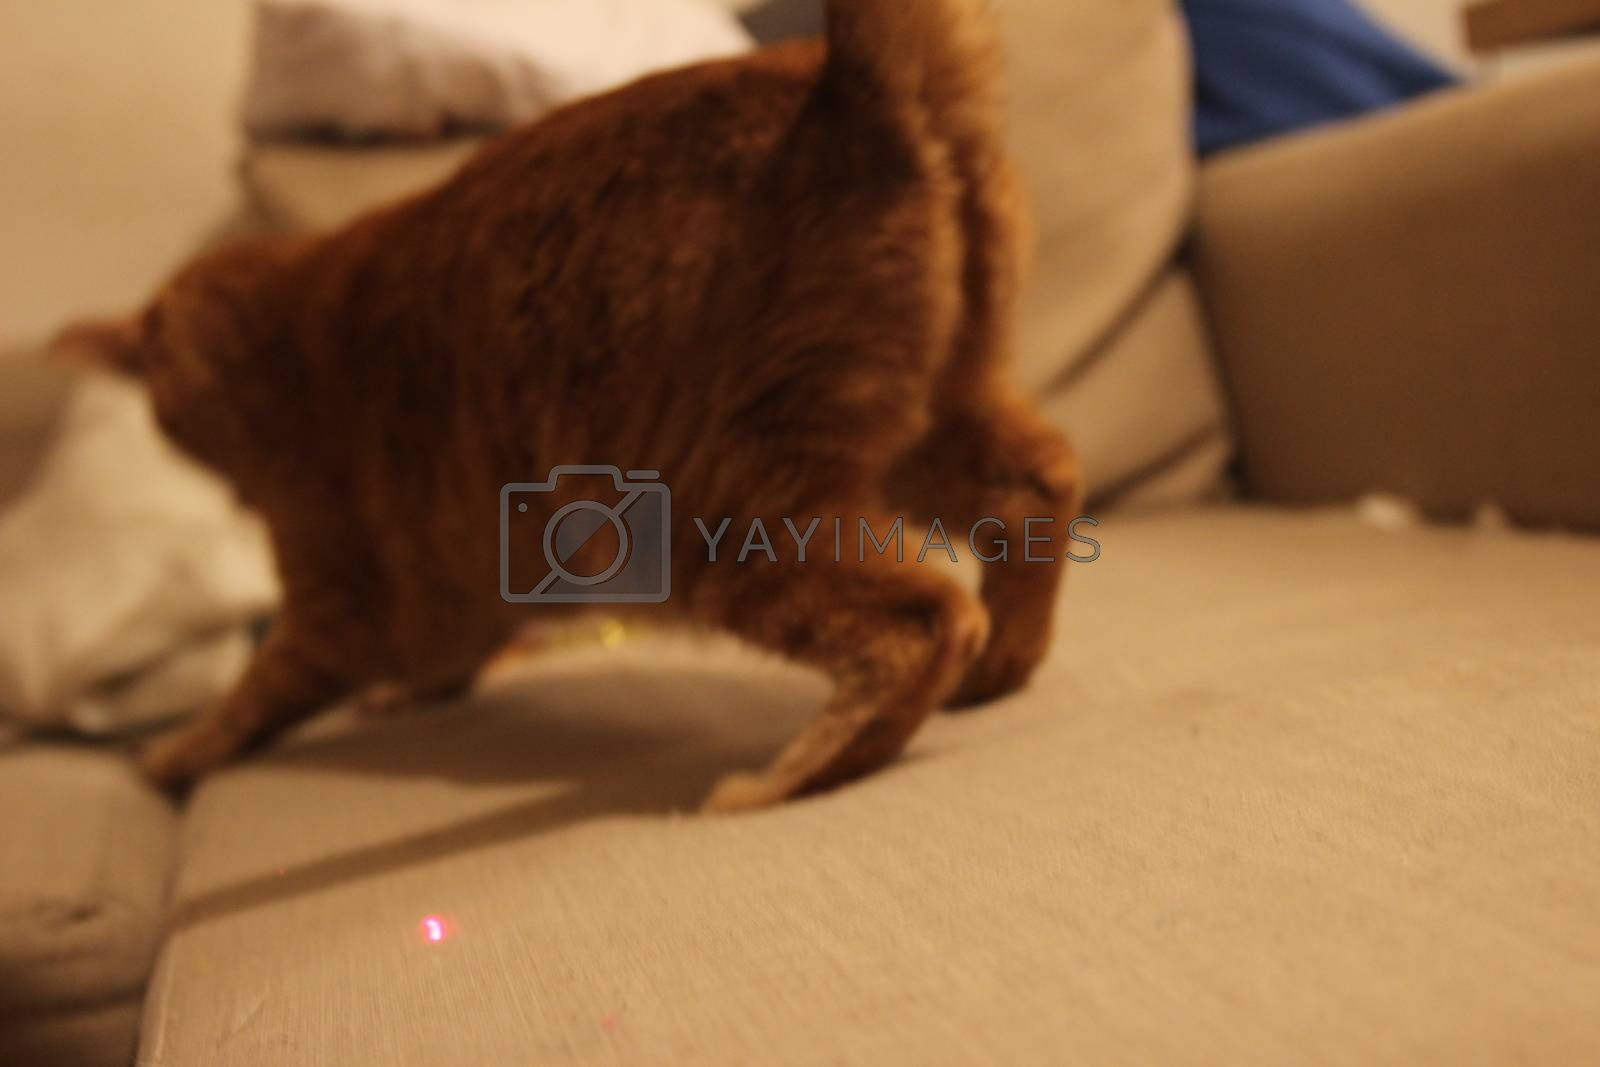 My Cat Spikey while playing, hunting and relaxing in the Sun. Photos are made in my house in Vienna